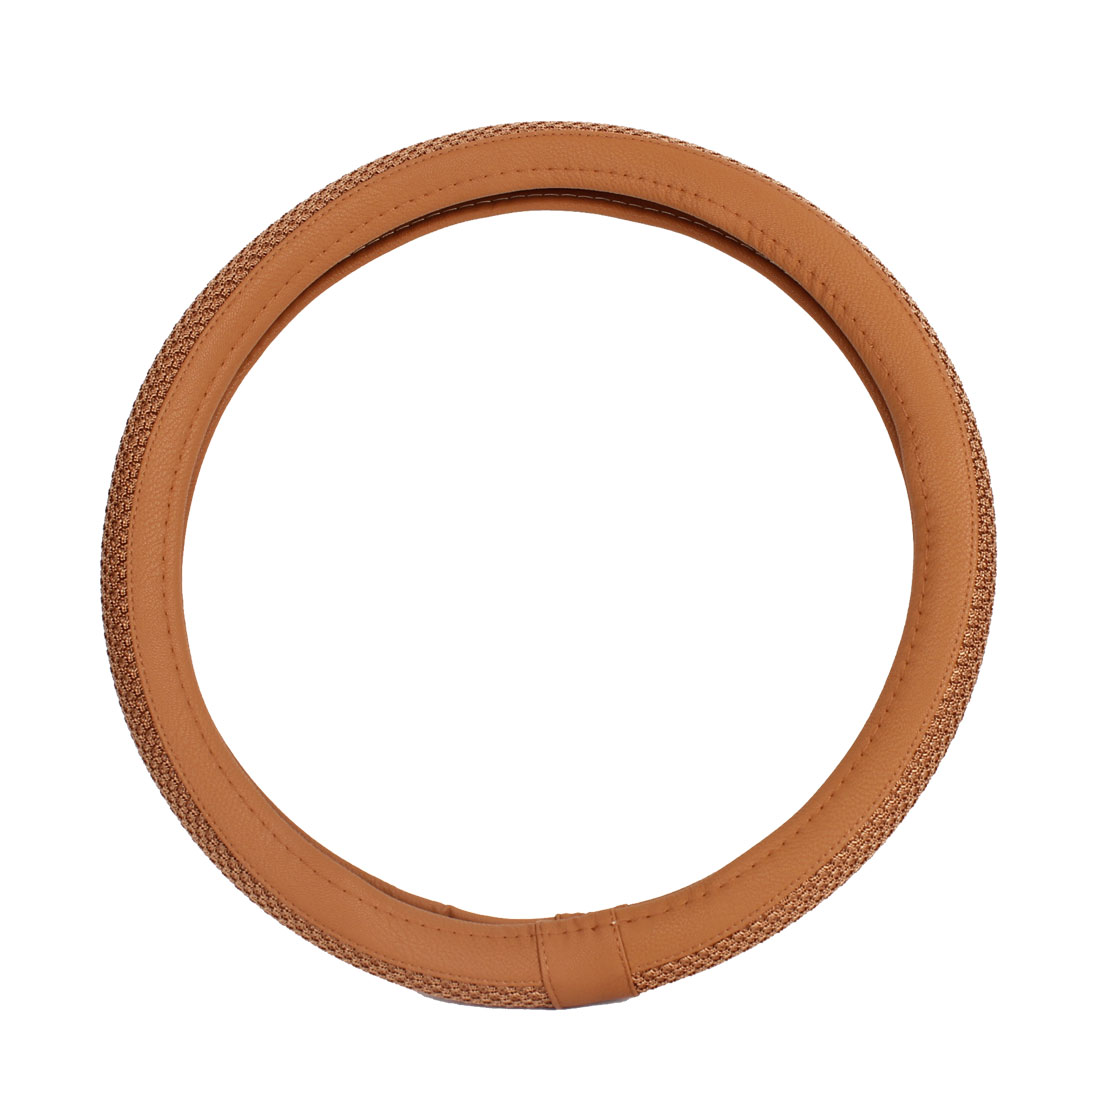 Brown Braided Nonslip Steering Wheel Protector Cover 38cm for Car